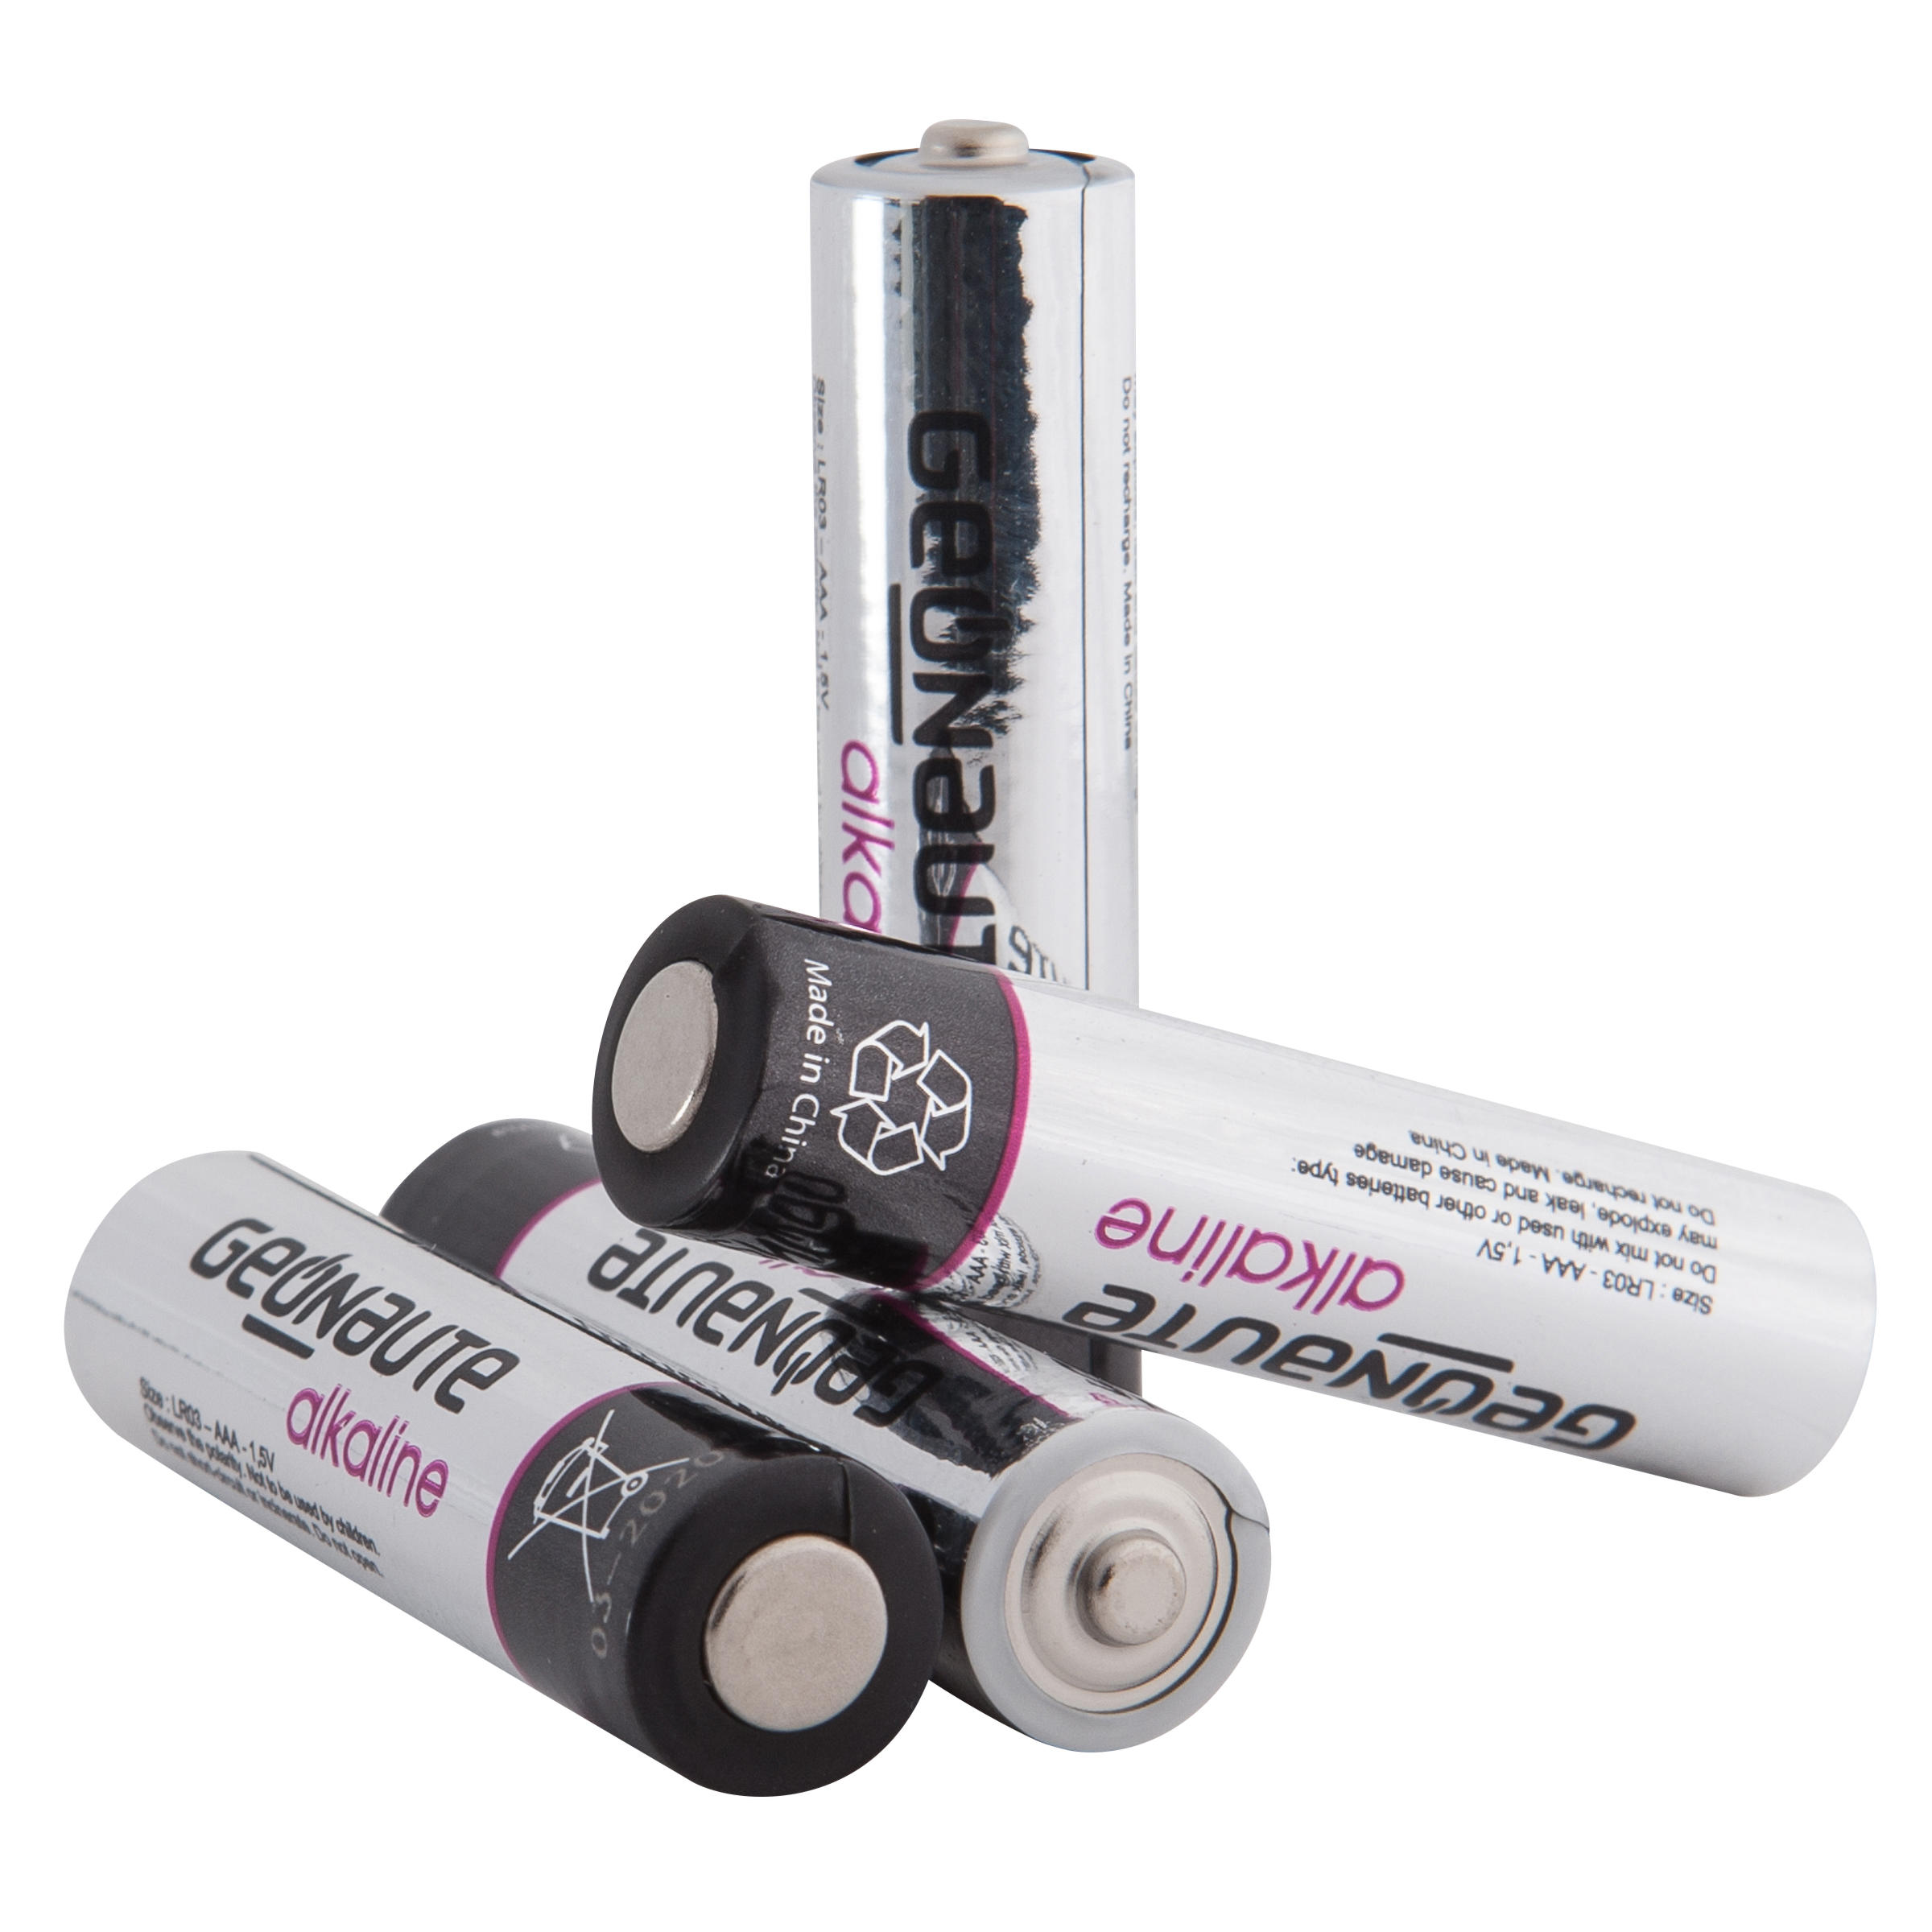 Pack of 4 LR03-AAA 1.5V batteries